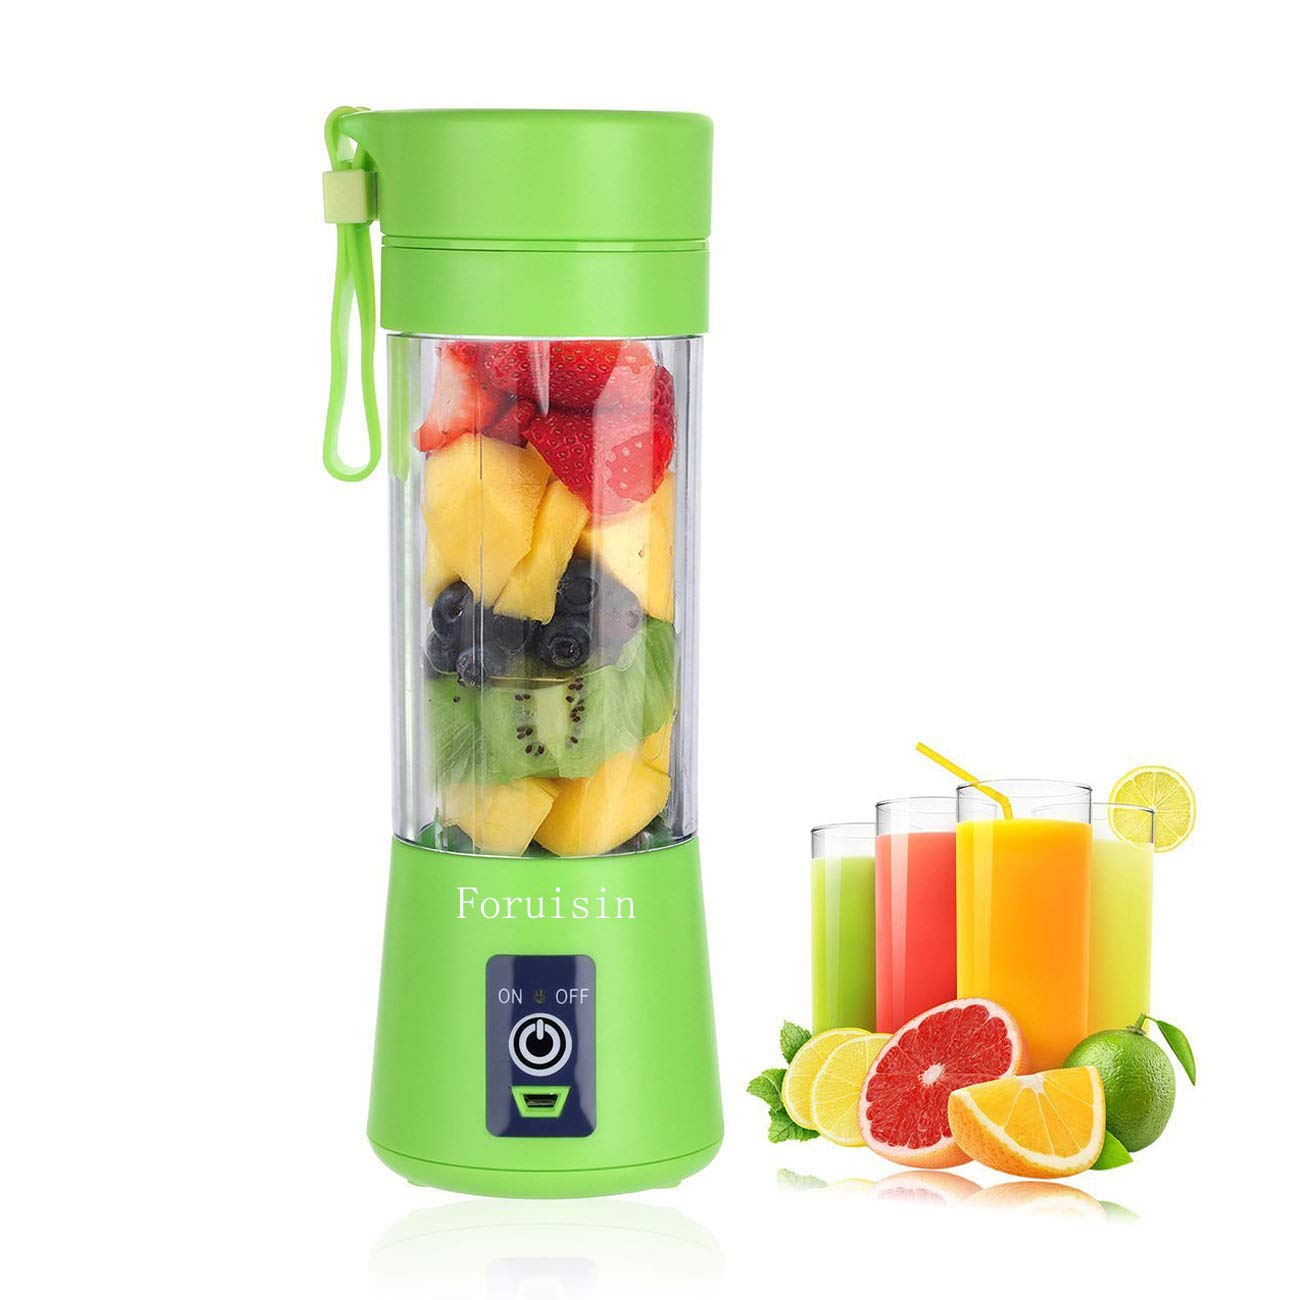 Portable Personal Blender, Household Juicer fruit shake Mixer -Six Blades, 380ml Baby cooking machine with USB Charger Cable (Green)